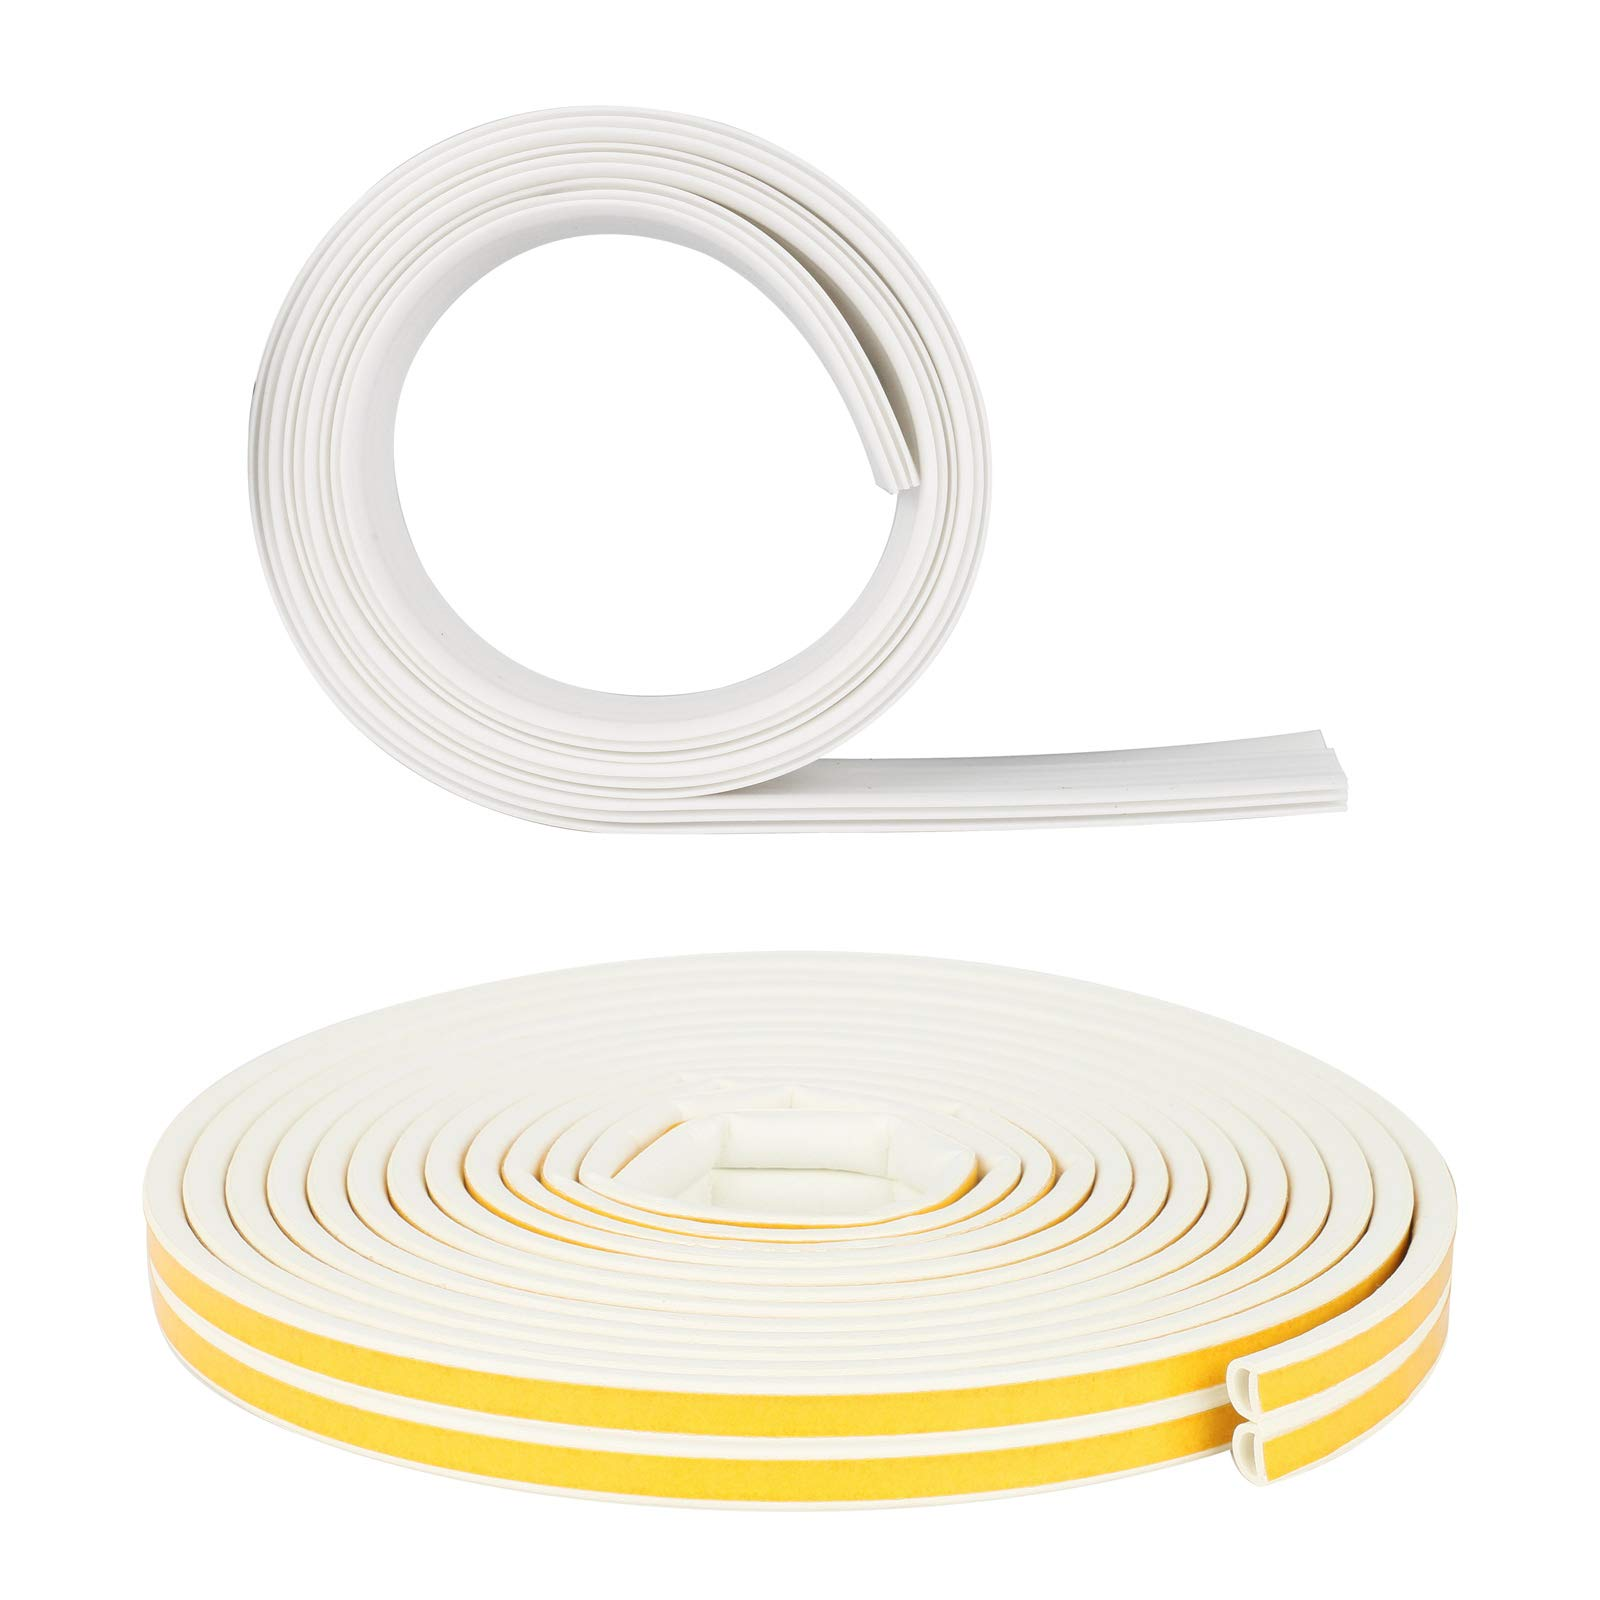 Soundproof Weather Door Window Seal Strip + Door Bottom Sweep Kit, 33Ft Self Adhesive Window Indoor Rubber Weatherstrip & 39'' Under Door Noise Insert Draft Blocker Sealing Sweep for Full Door Sealing